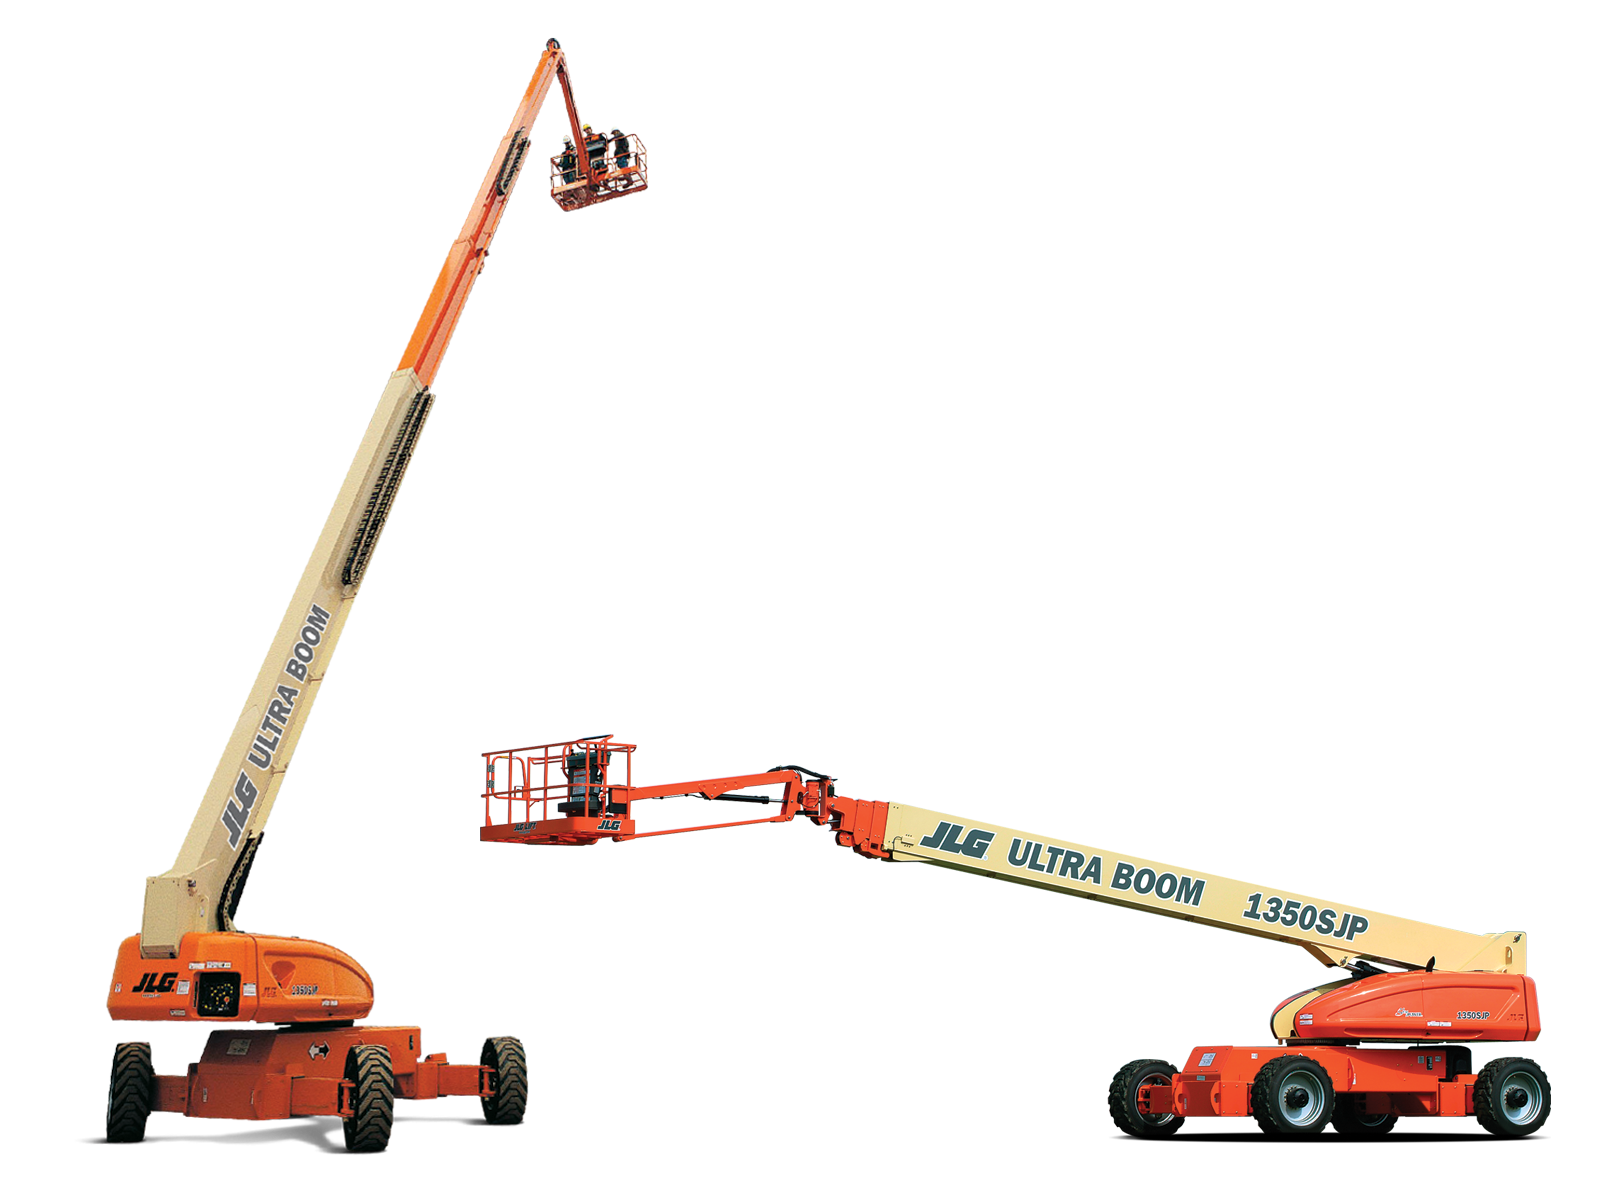 JLG Ultra Series Telescopic Boom Lift 1350SJP